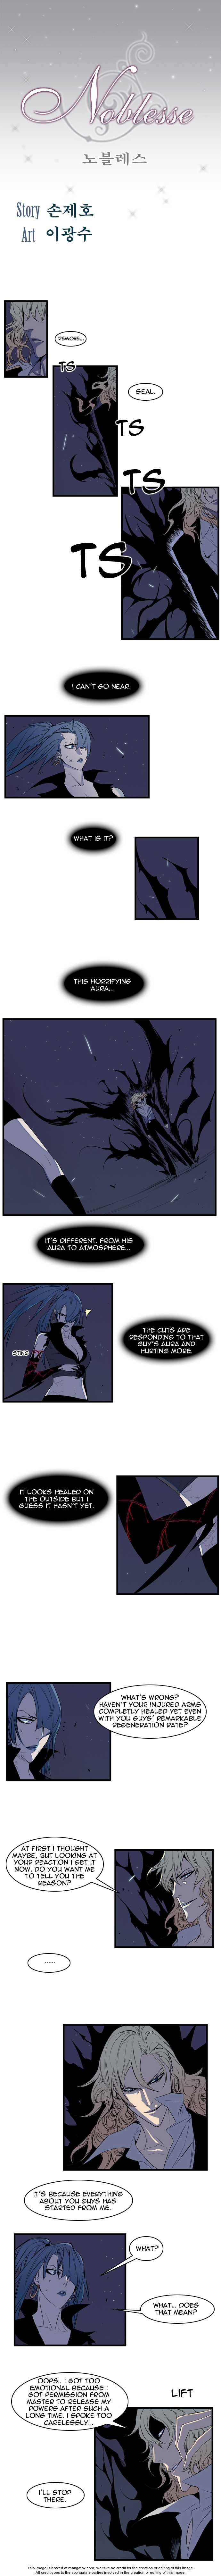 Noblesse 77 Page 1